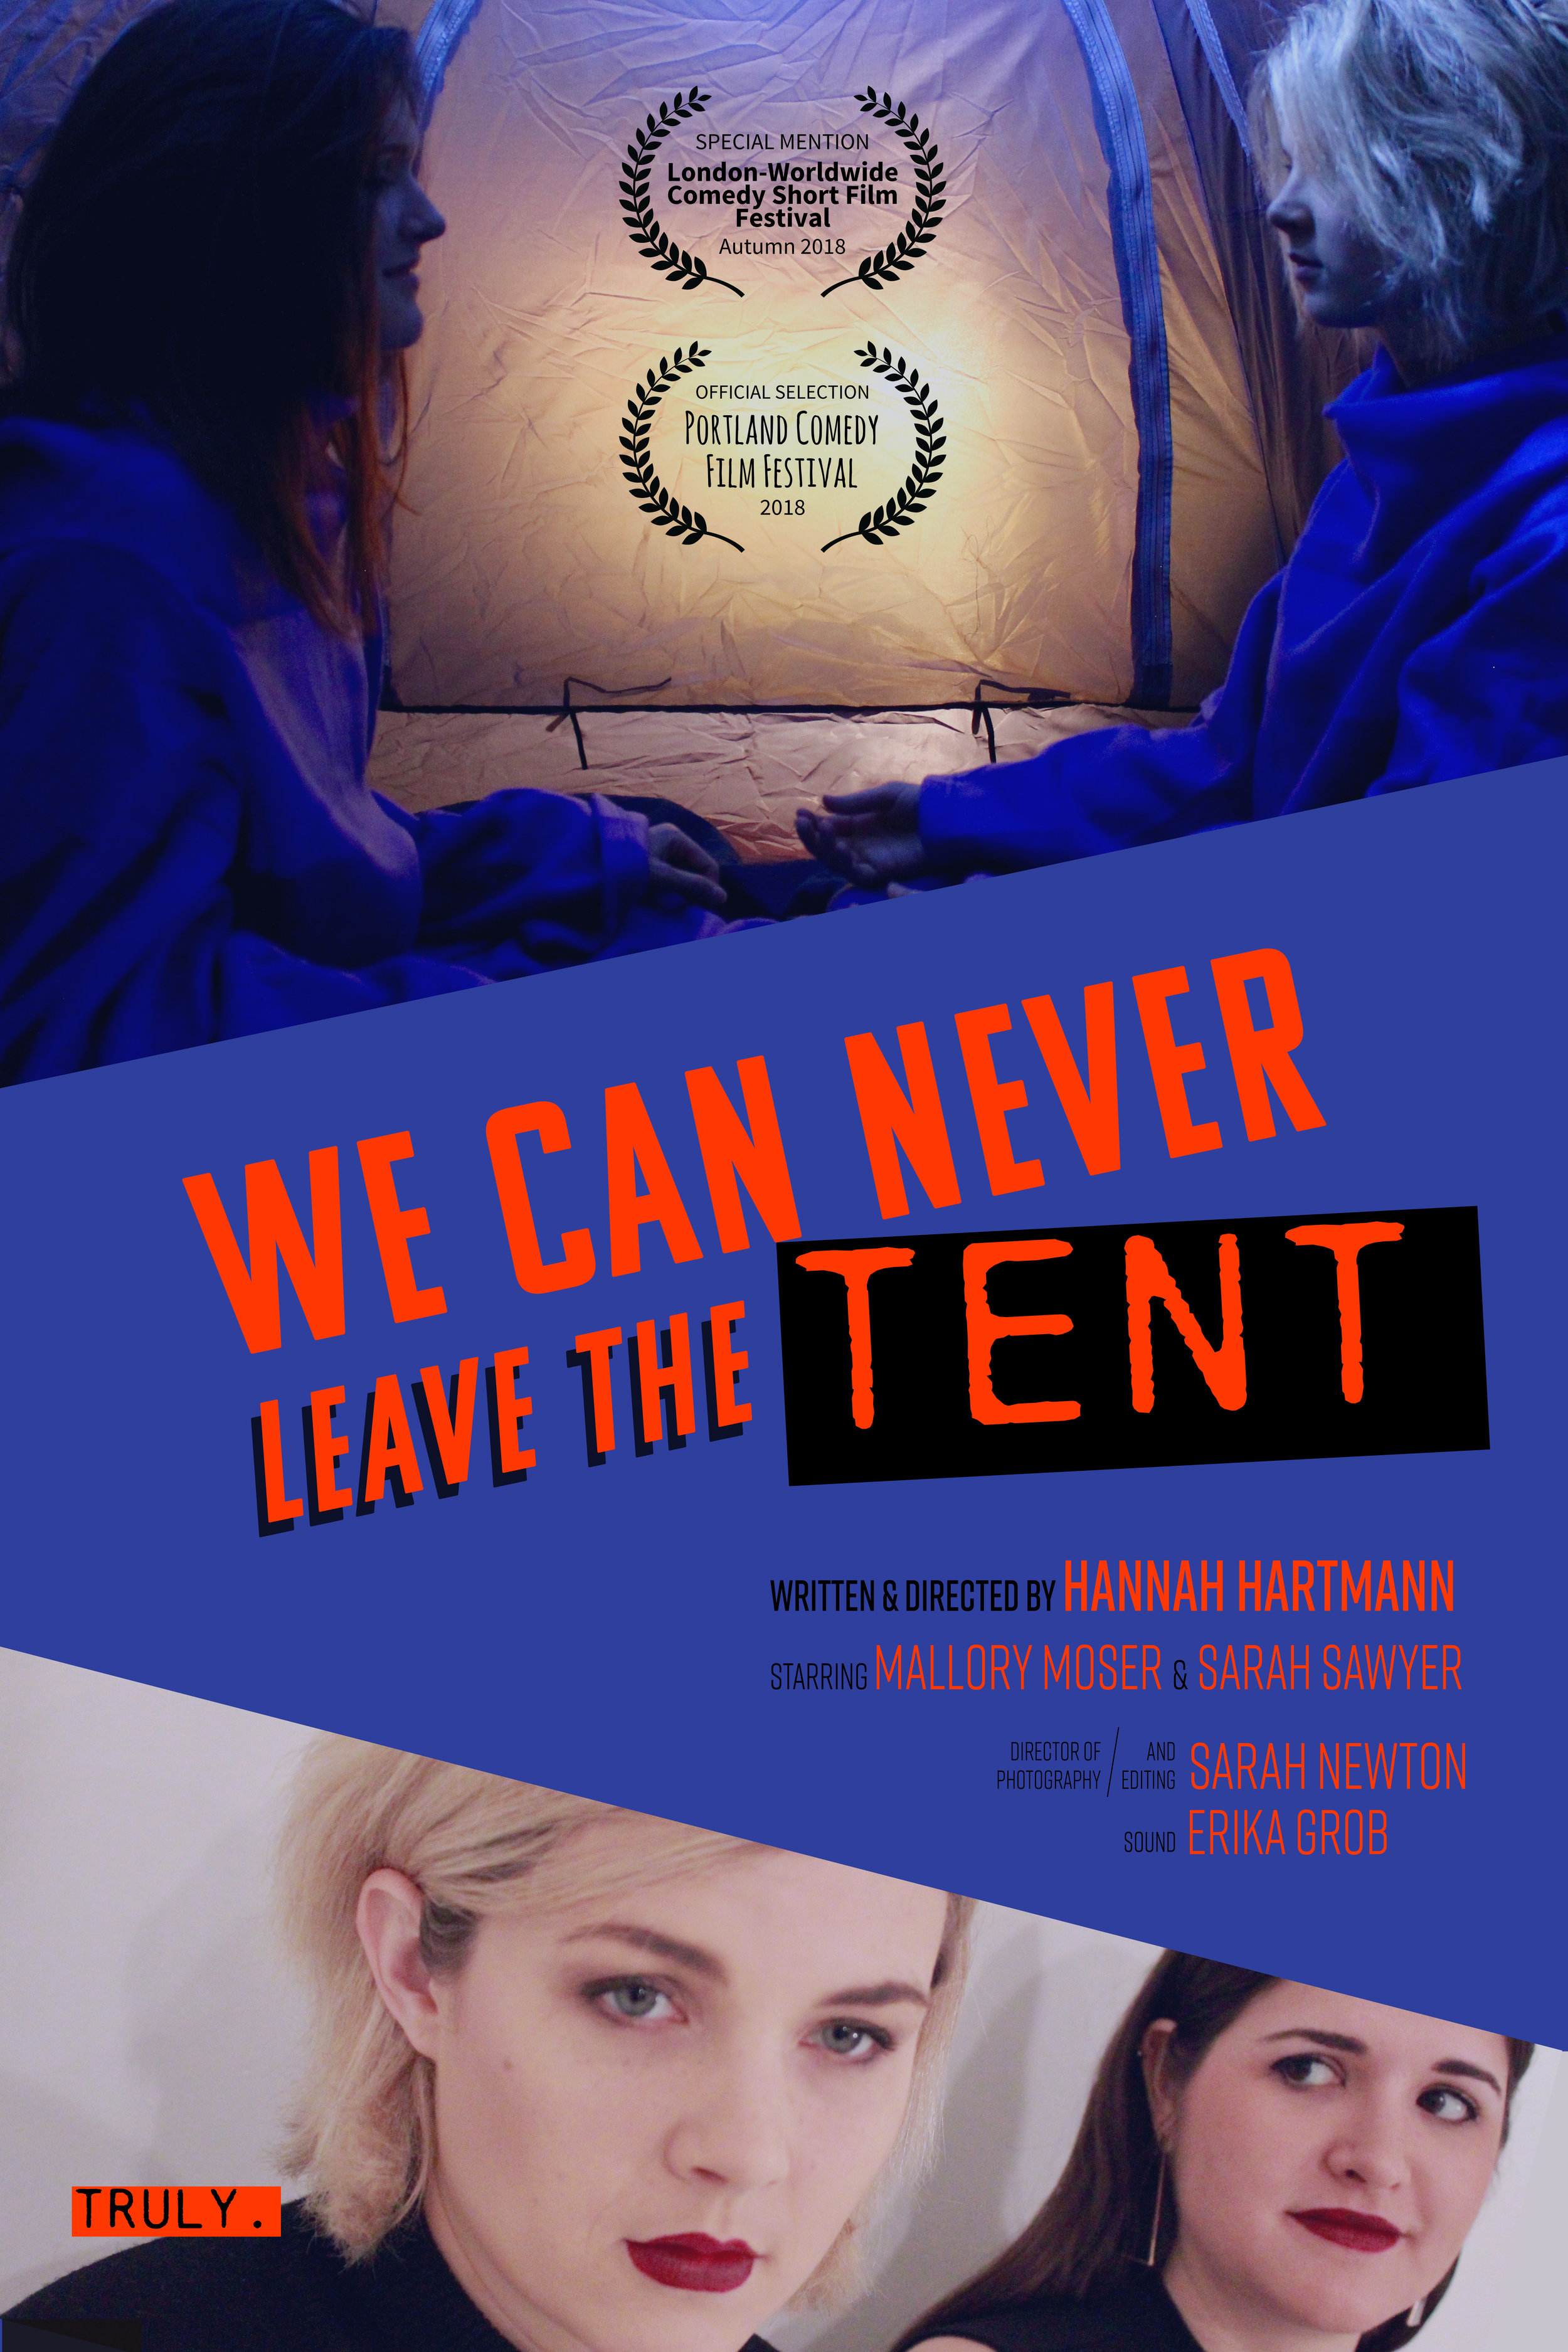 We Can Never Leave the Tent - Stacy and Tanya are well-educated and out-of-touch filmmakers who love horror and hate misogyny. Their egos hit a high when they get to explain to a documentary team about their bold but truly horrible story-telling choices in their first feature-length film, We Can Never Leave the Tent.Written and Directed by: Hannah Hartmann Starring: Sarah Sawyer and Mallory Moser Director of Photography: Sarah Newton Produced by: Sarah Sawyer